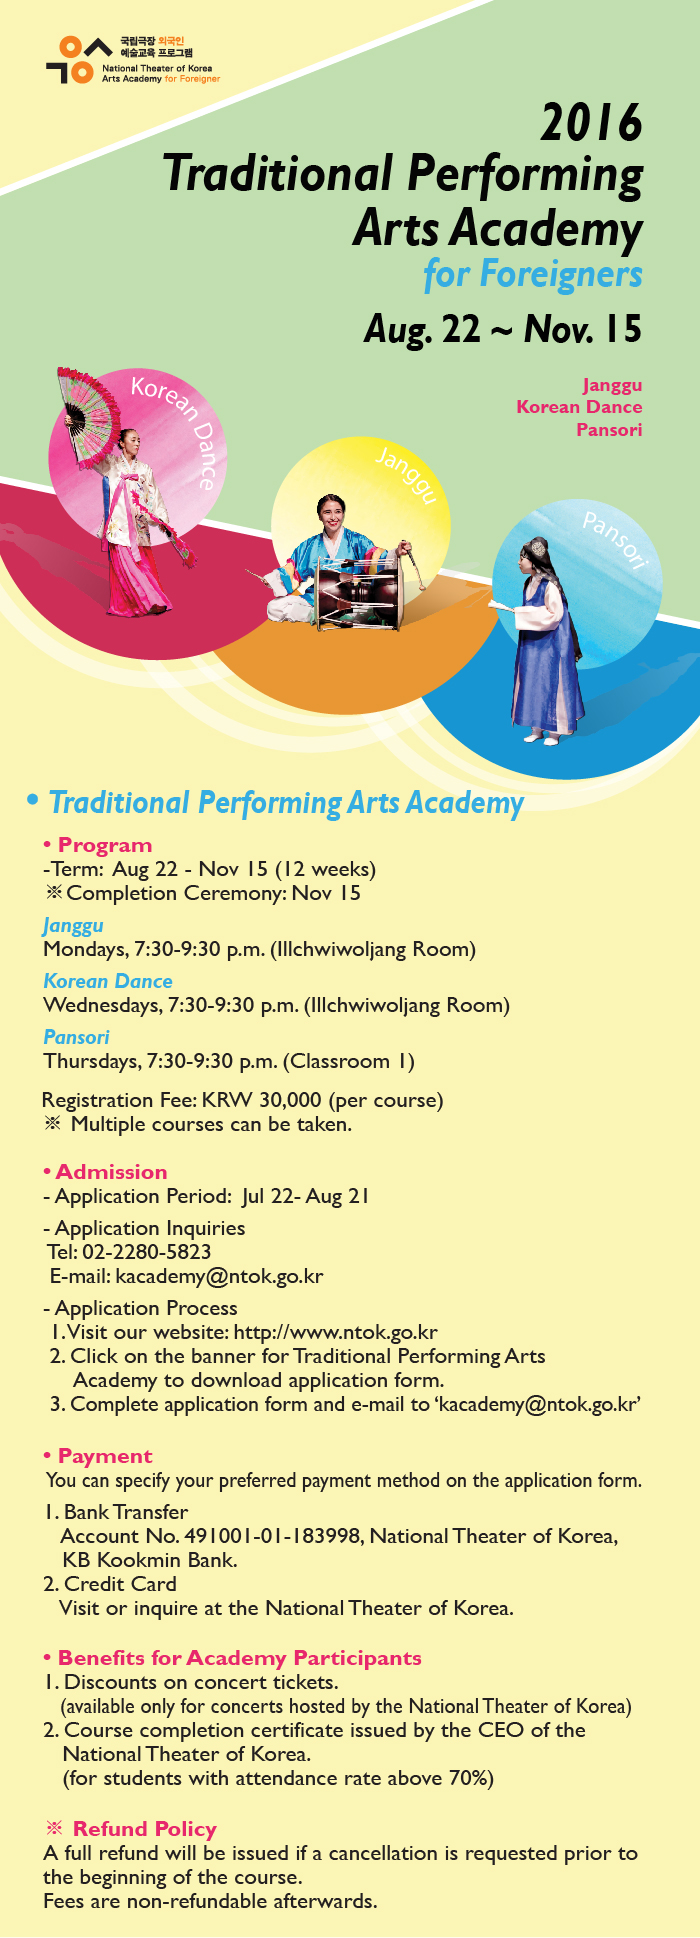 2016 Traditional Performing Arts Academy  for ForeignersAug 22 - Nov 15Janggu  Korean Dance  PansoriTraditional Performing Arts AcademyProgram-Term: Aus 22 - Nov 15 (12 weeks)※Completion Ceremony: Nov 15JangguMondays, 7:30-9:30 p.m. (Illchwiwoljang Room)Korean DanceWednesdays, 7:30-9:30 p.m. (Illchwiwoljang Room)Pansori (Korean Traditional Singing)Thursdays, 7:30-9:30 p.m. (Classroom 1)Registration Fee: KRW 30,000 (per course)※ Multiple courses can be taken.Admission-Application Period: Jul 21- Aus 21-Application Inquiries Tel: 02-2280-5823 E-mail: kacademy@ntok.go.kr-Application Process 1. Visit our website: http://www.ntok.go.kr 2. Click on the banner for Traditional Performing Arts Academy to download application form  3. Complete application form and e-mail to 'kacademy@ntok.go.kr'Payment You can specify your preferred payment method on the application form.1. Bank Transfer Account No. 491001-01-183998, National Theater of Korea, KB Kookmin Bank2. Credit Card Visit or inquire at the National Theater of Korea.  Benefits for Academy Participants 1.Discounts on concert tickets(available only for concerts hosted by the National Theater of Korea)2.Course completion certificate issued by the CEO of the National Theater of Korea(for students with attendance rate above 70%)※ Refund PolicyA full refund will be issued if a cancellation is requested prior to the beginning of the course.   Fees are non-refundable afterwards.